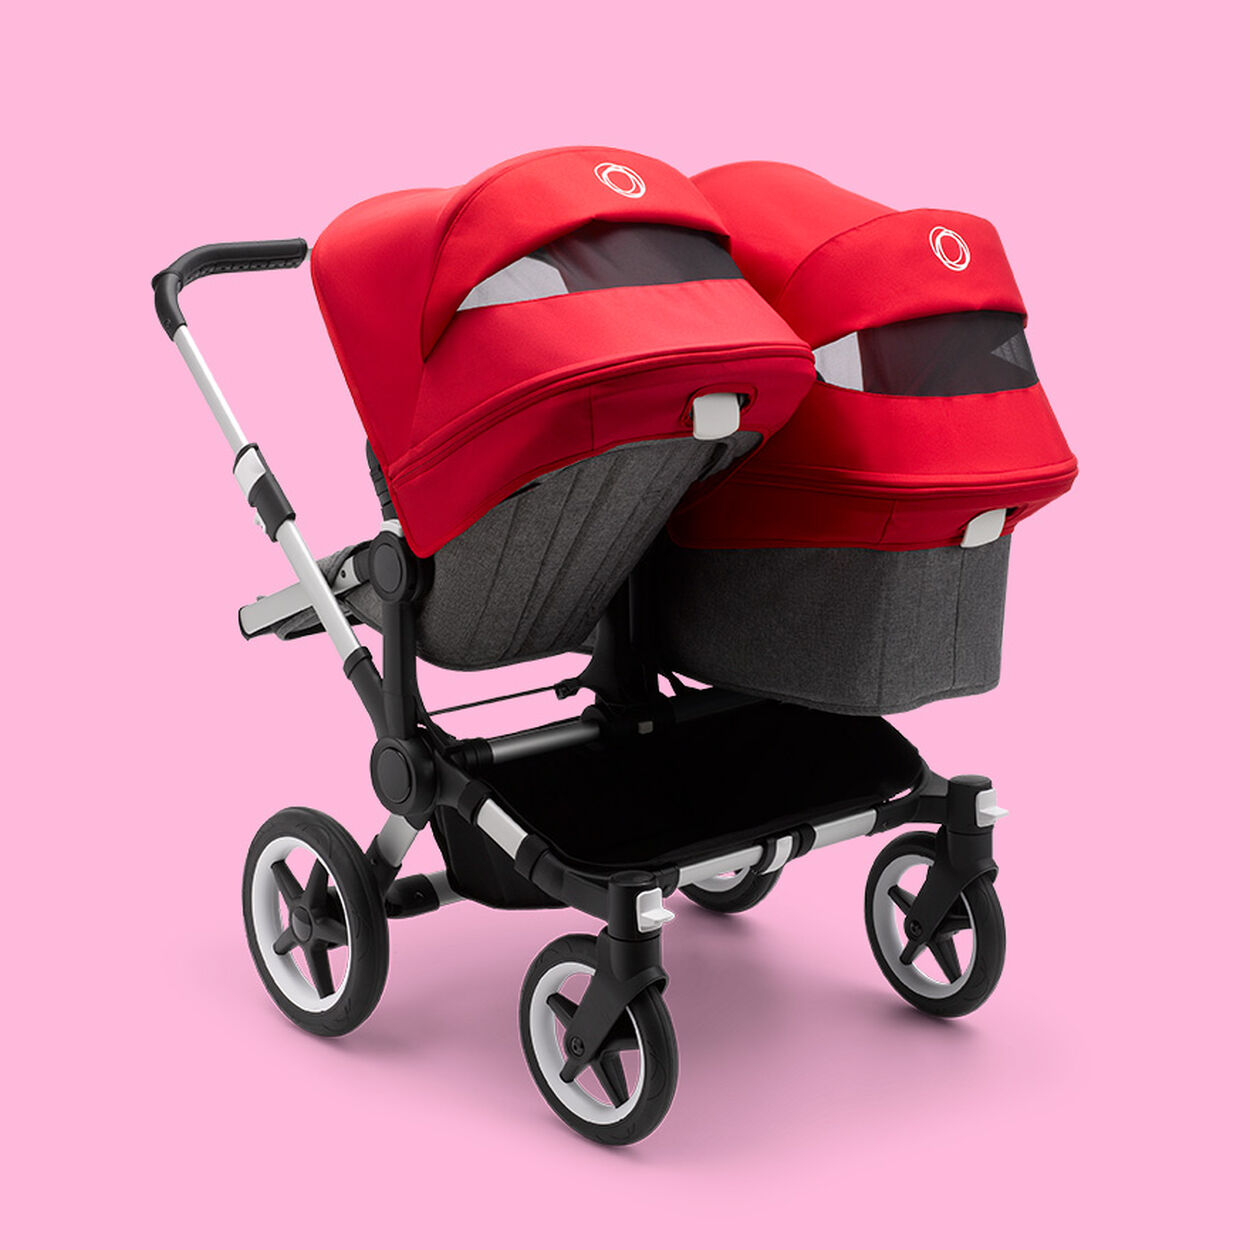 Back of Donkey 3 Duo stroller